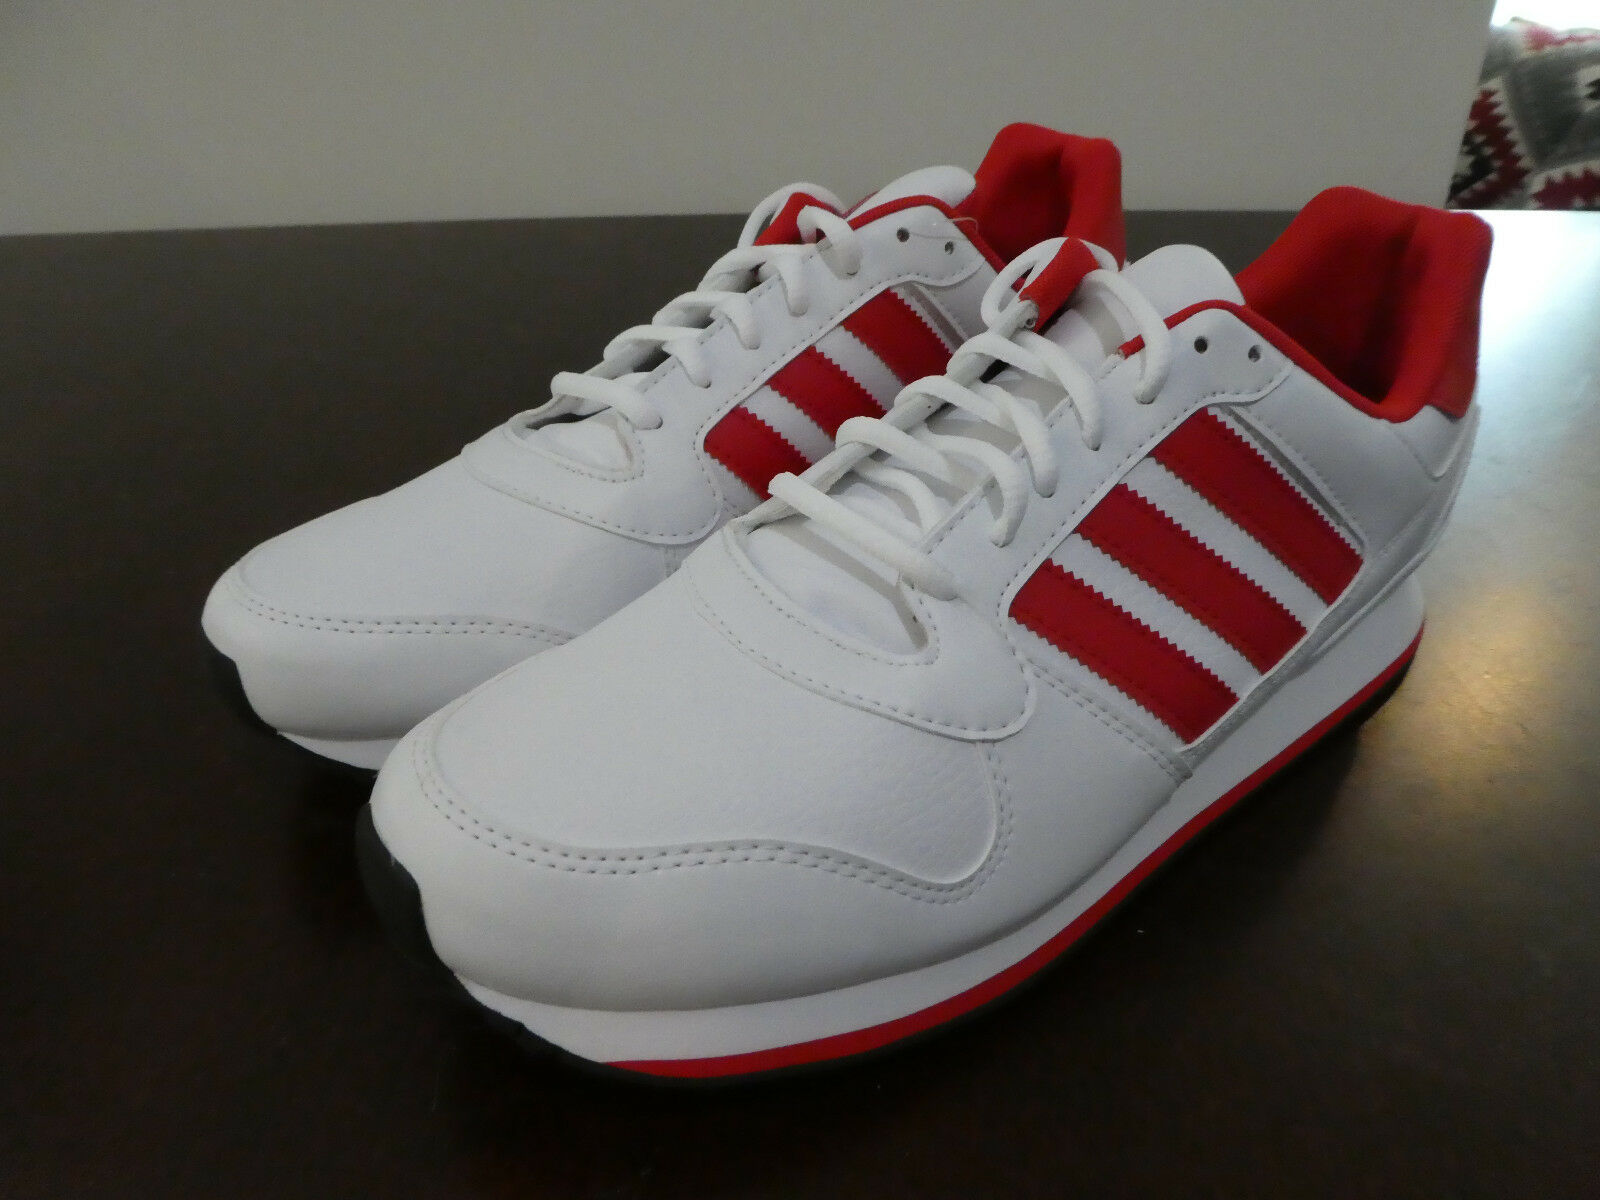 Adidas ZXZ WLB 2 shoes mens new sneakers G66843 white red